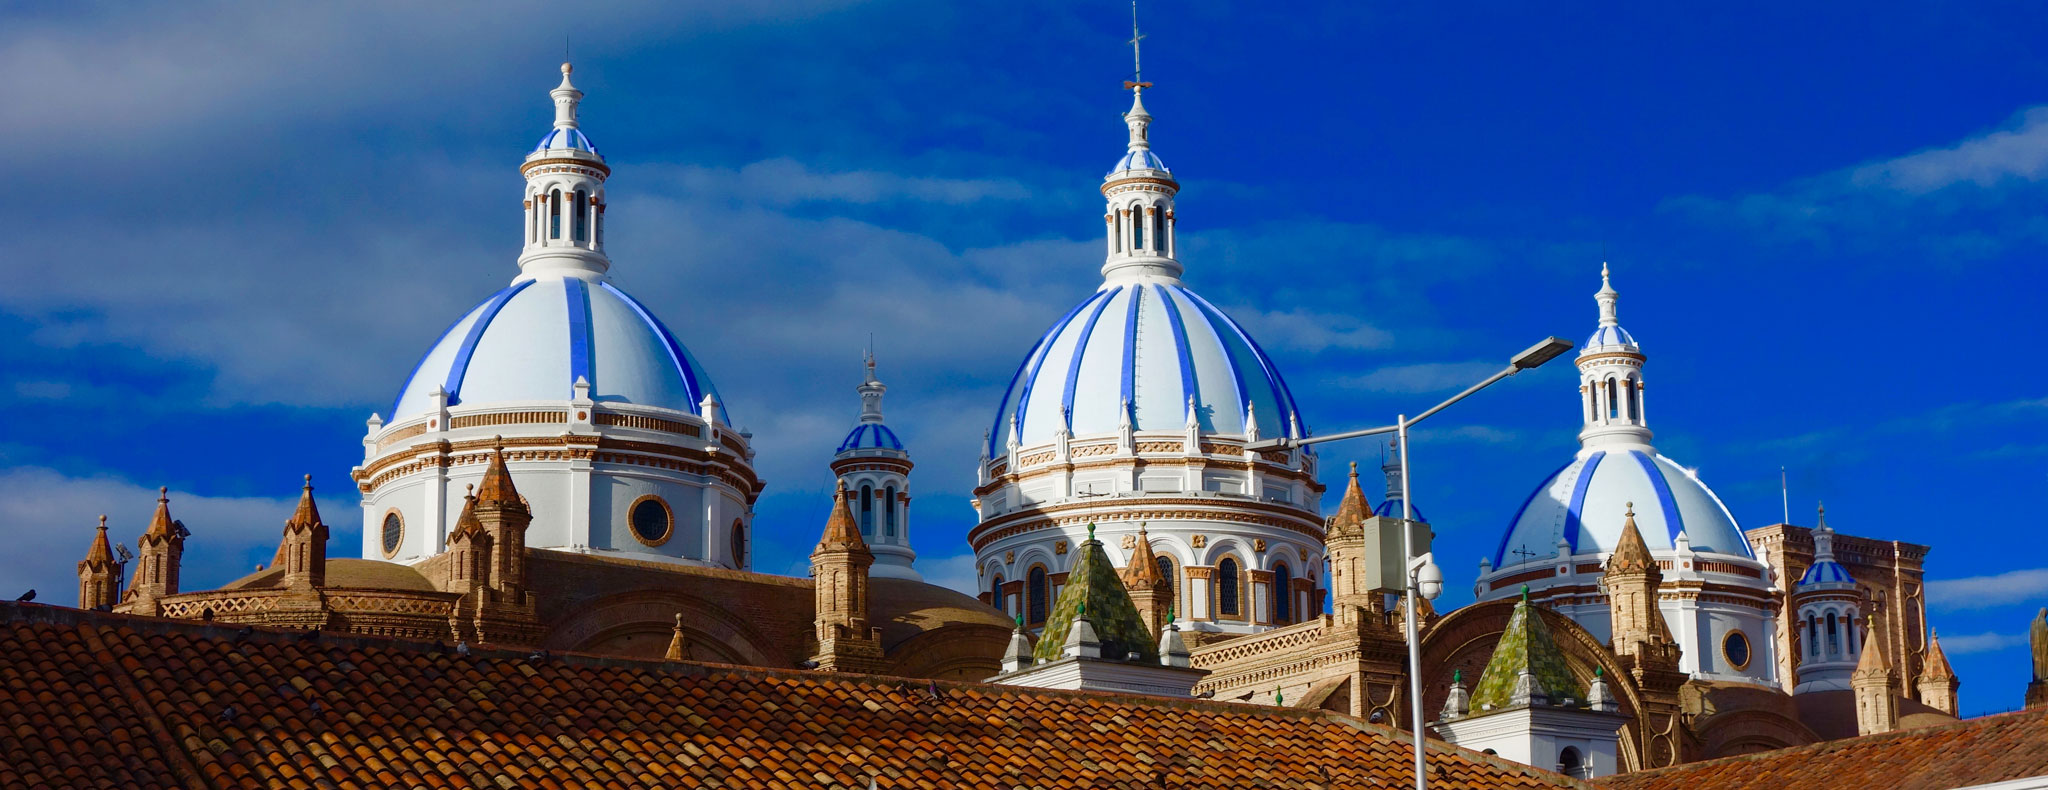 Rooftops of colonial buildings in Cuenca, Ecuador